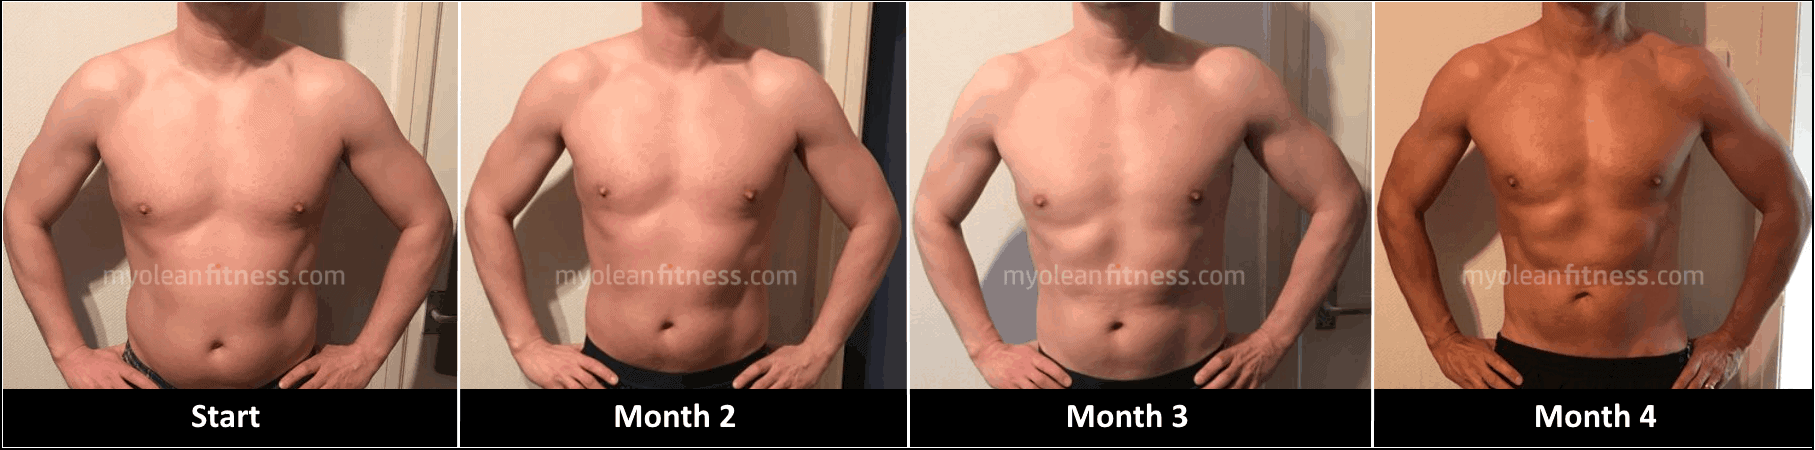 Ian's Fat Loss Transformation Progress - Myolean Fitness